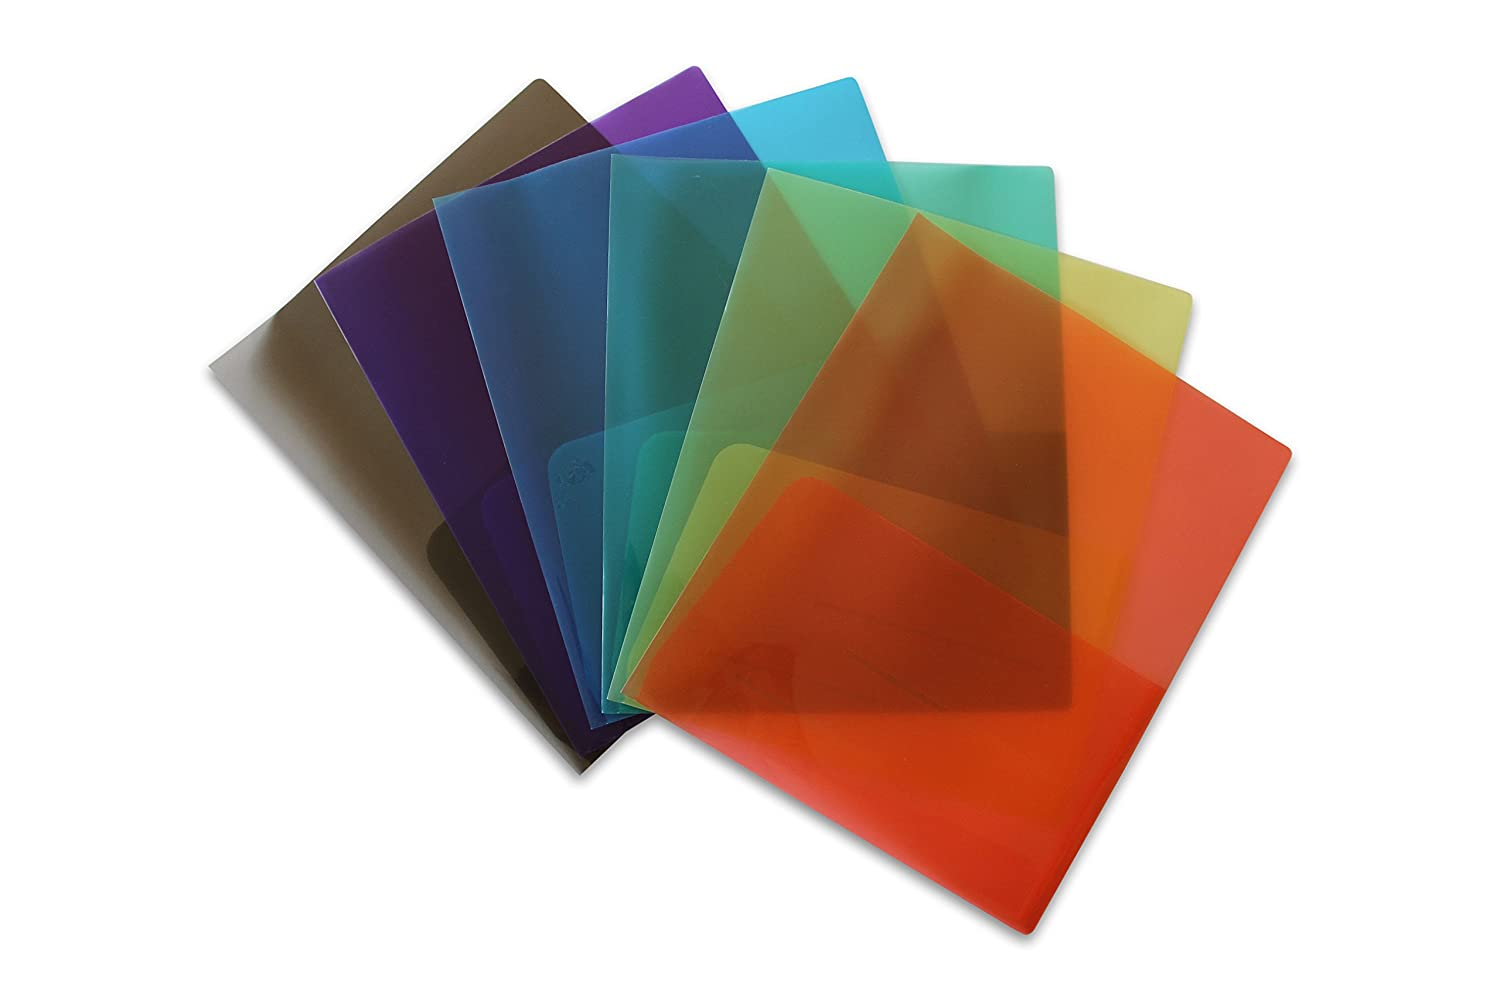 Clear Lightweight Plastic 2 Pocket Folder (Pack of 6 Assorted Colors) For Letter Size Papers, Includes Business Card Slot